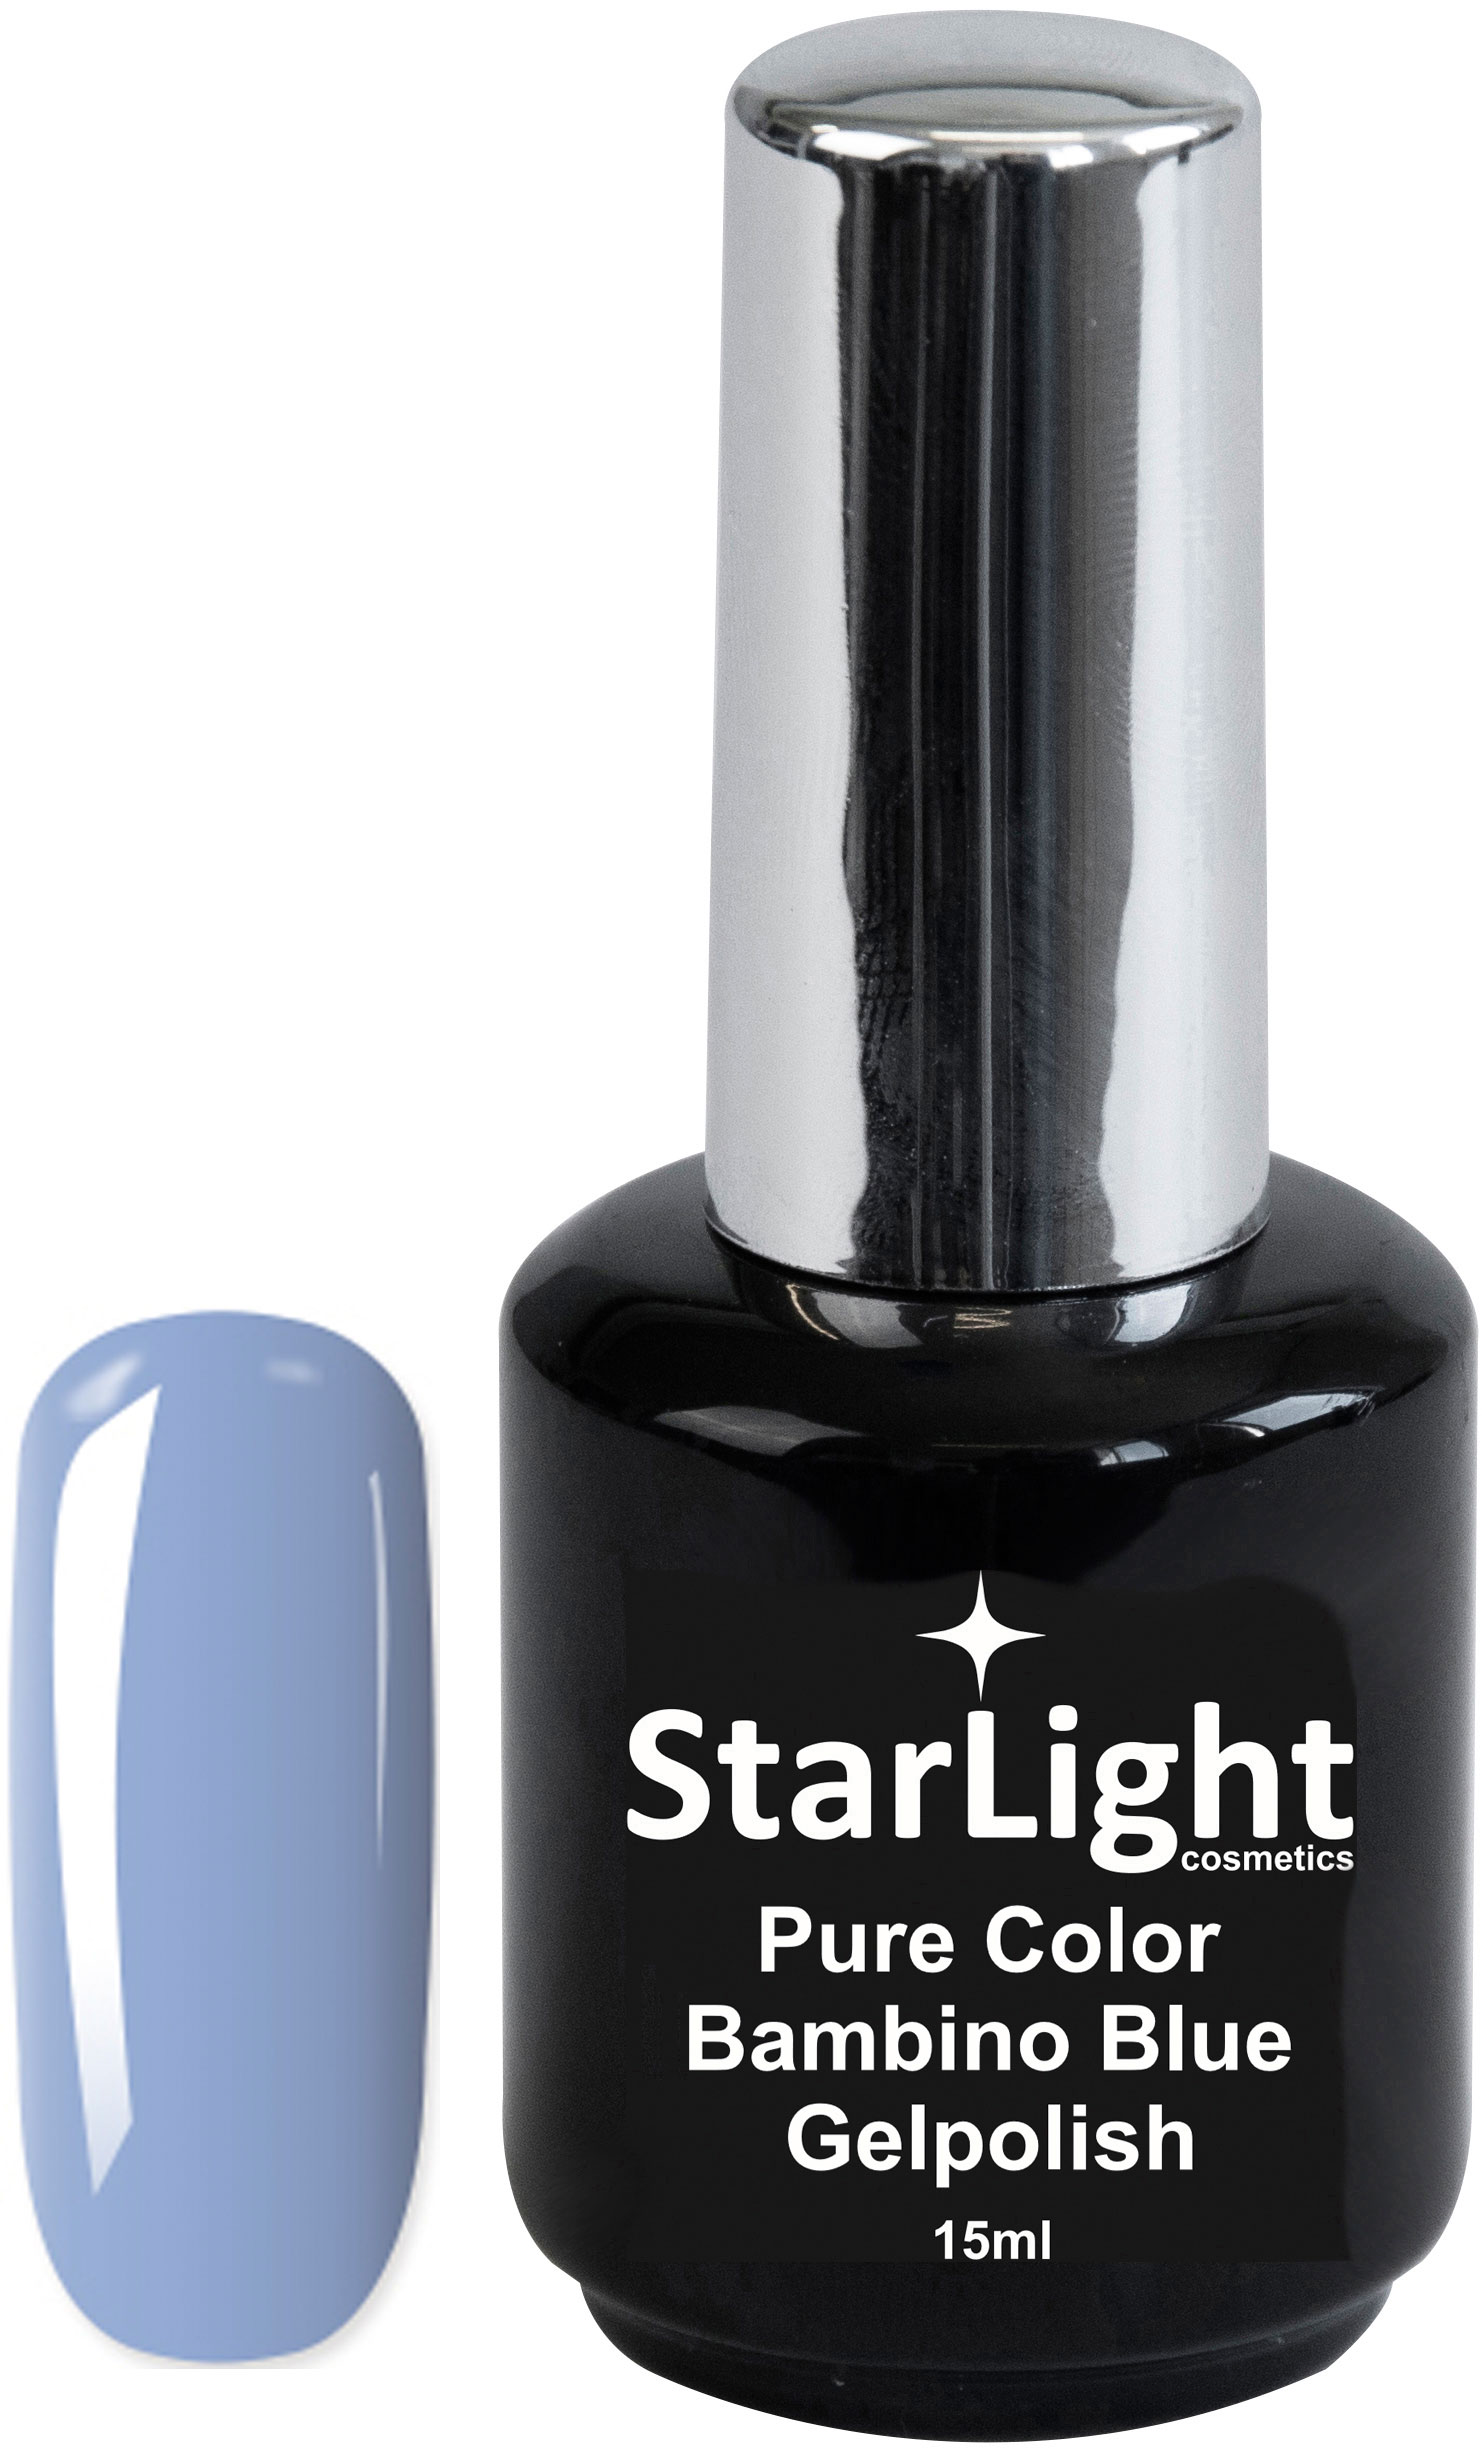 Naglar Gelpolish Pure Color Bambino Blue - 15 ml